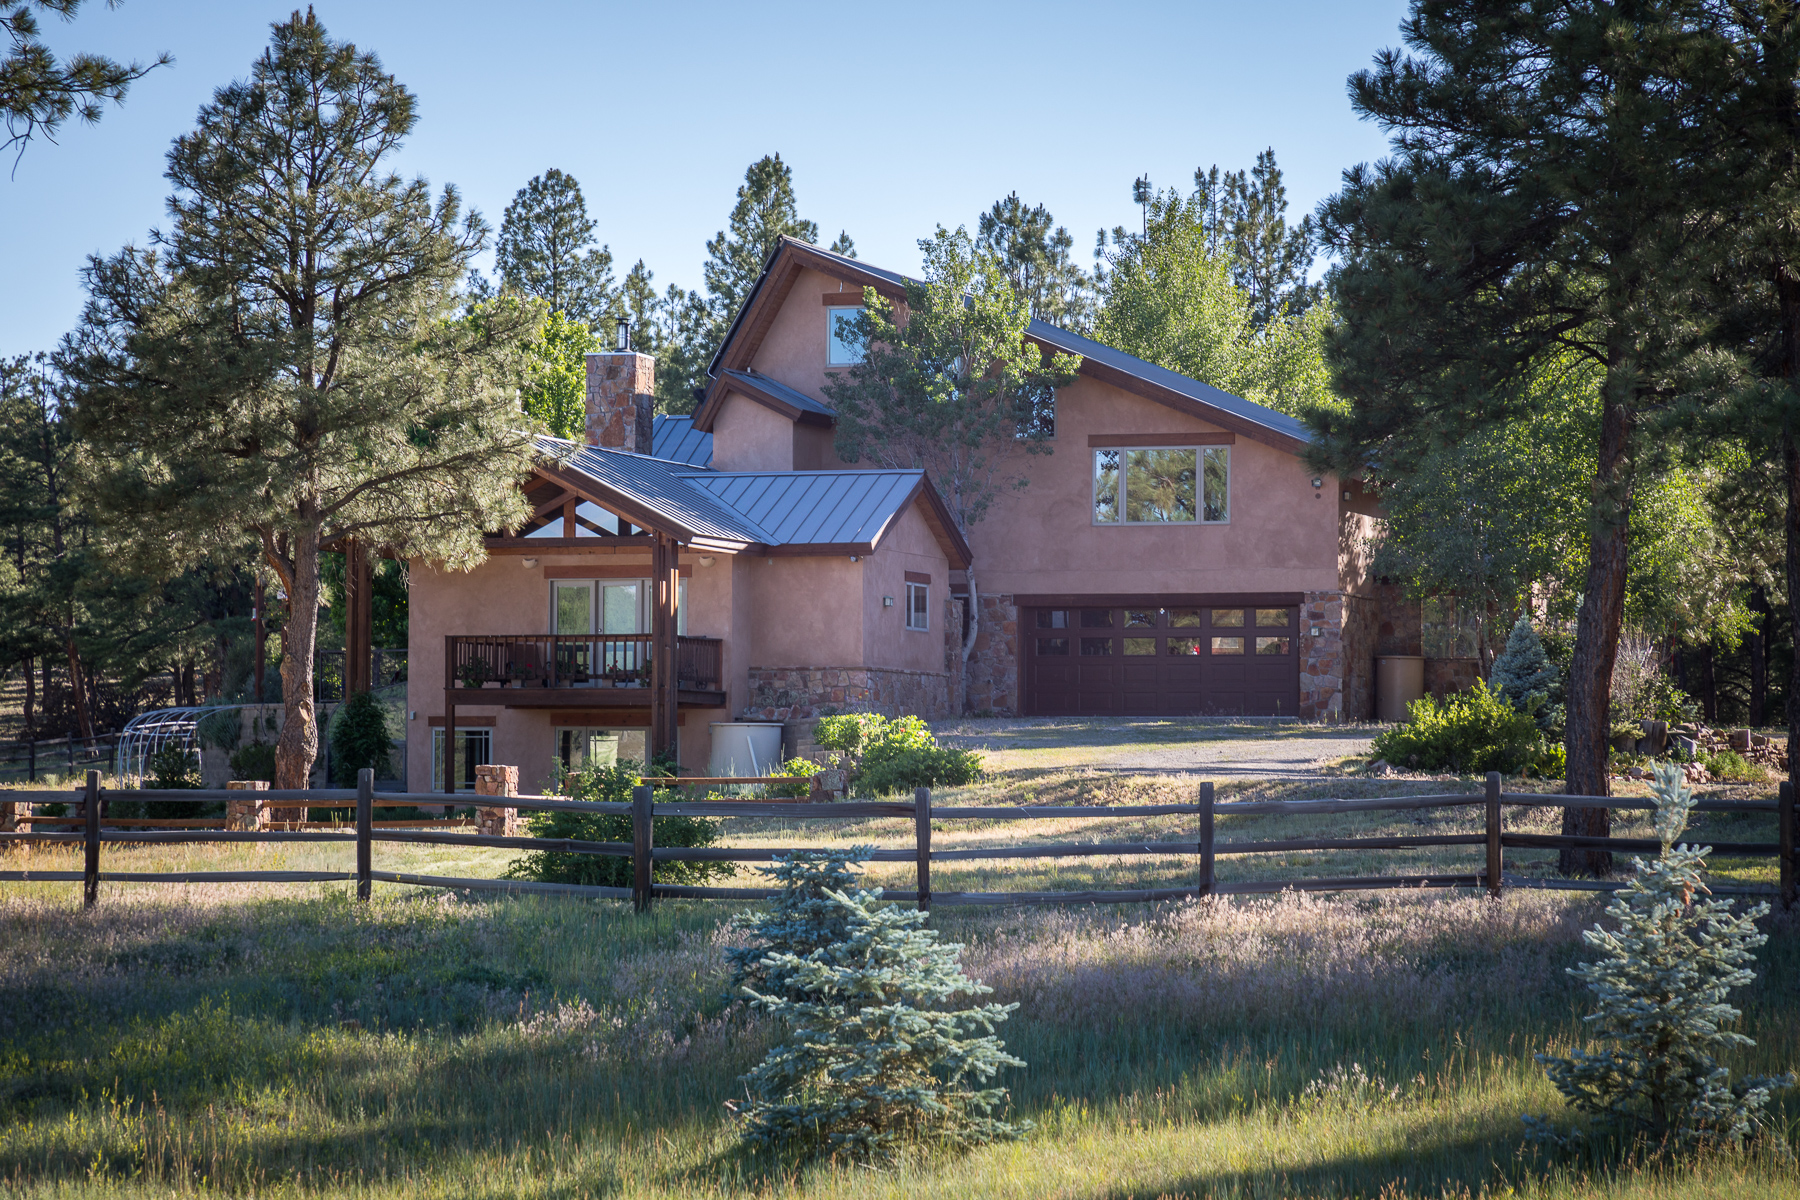 Single Family Home for Sale at Peaceful Meadow Ranch 2415 Echo Canyon Ranch Lane Pagosa Springs, Colorado 81147 United States